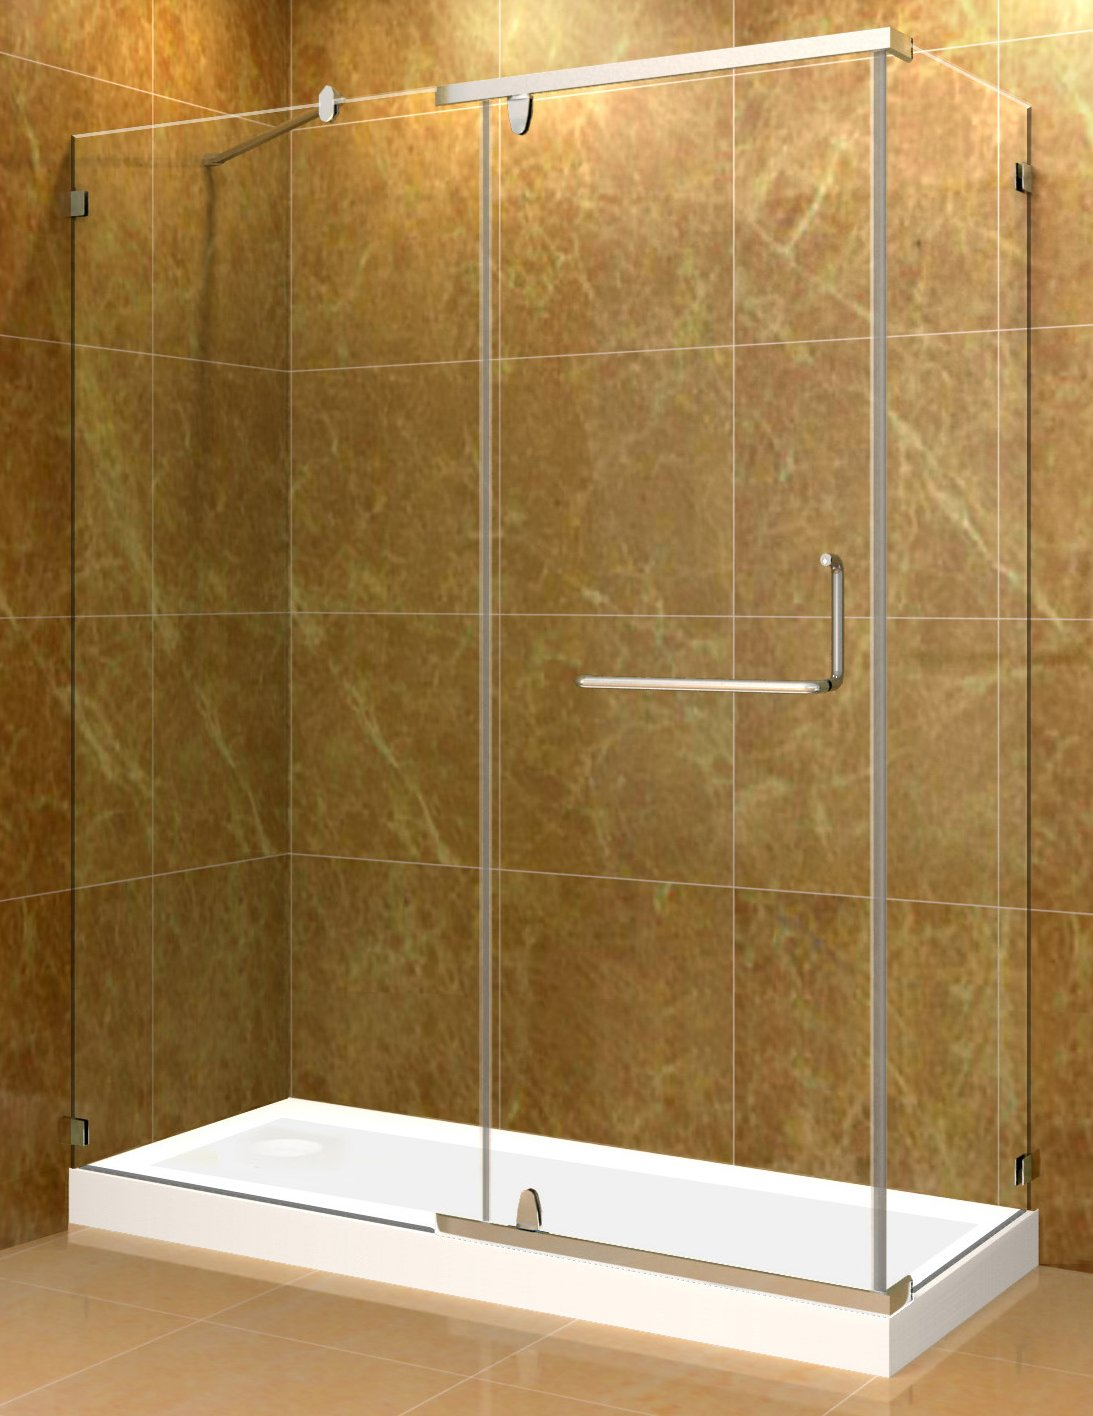 """durable service Aston SEN975-TR-60-10-L  60"""" Shower Enclosure with Left Shower Tray, Chrome Hardware, 3/8"""" (10Mm) Glass"""